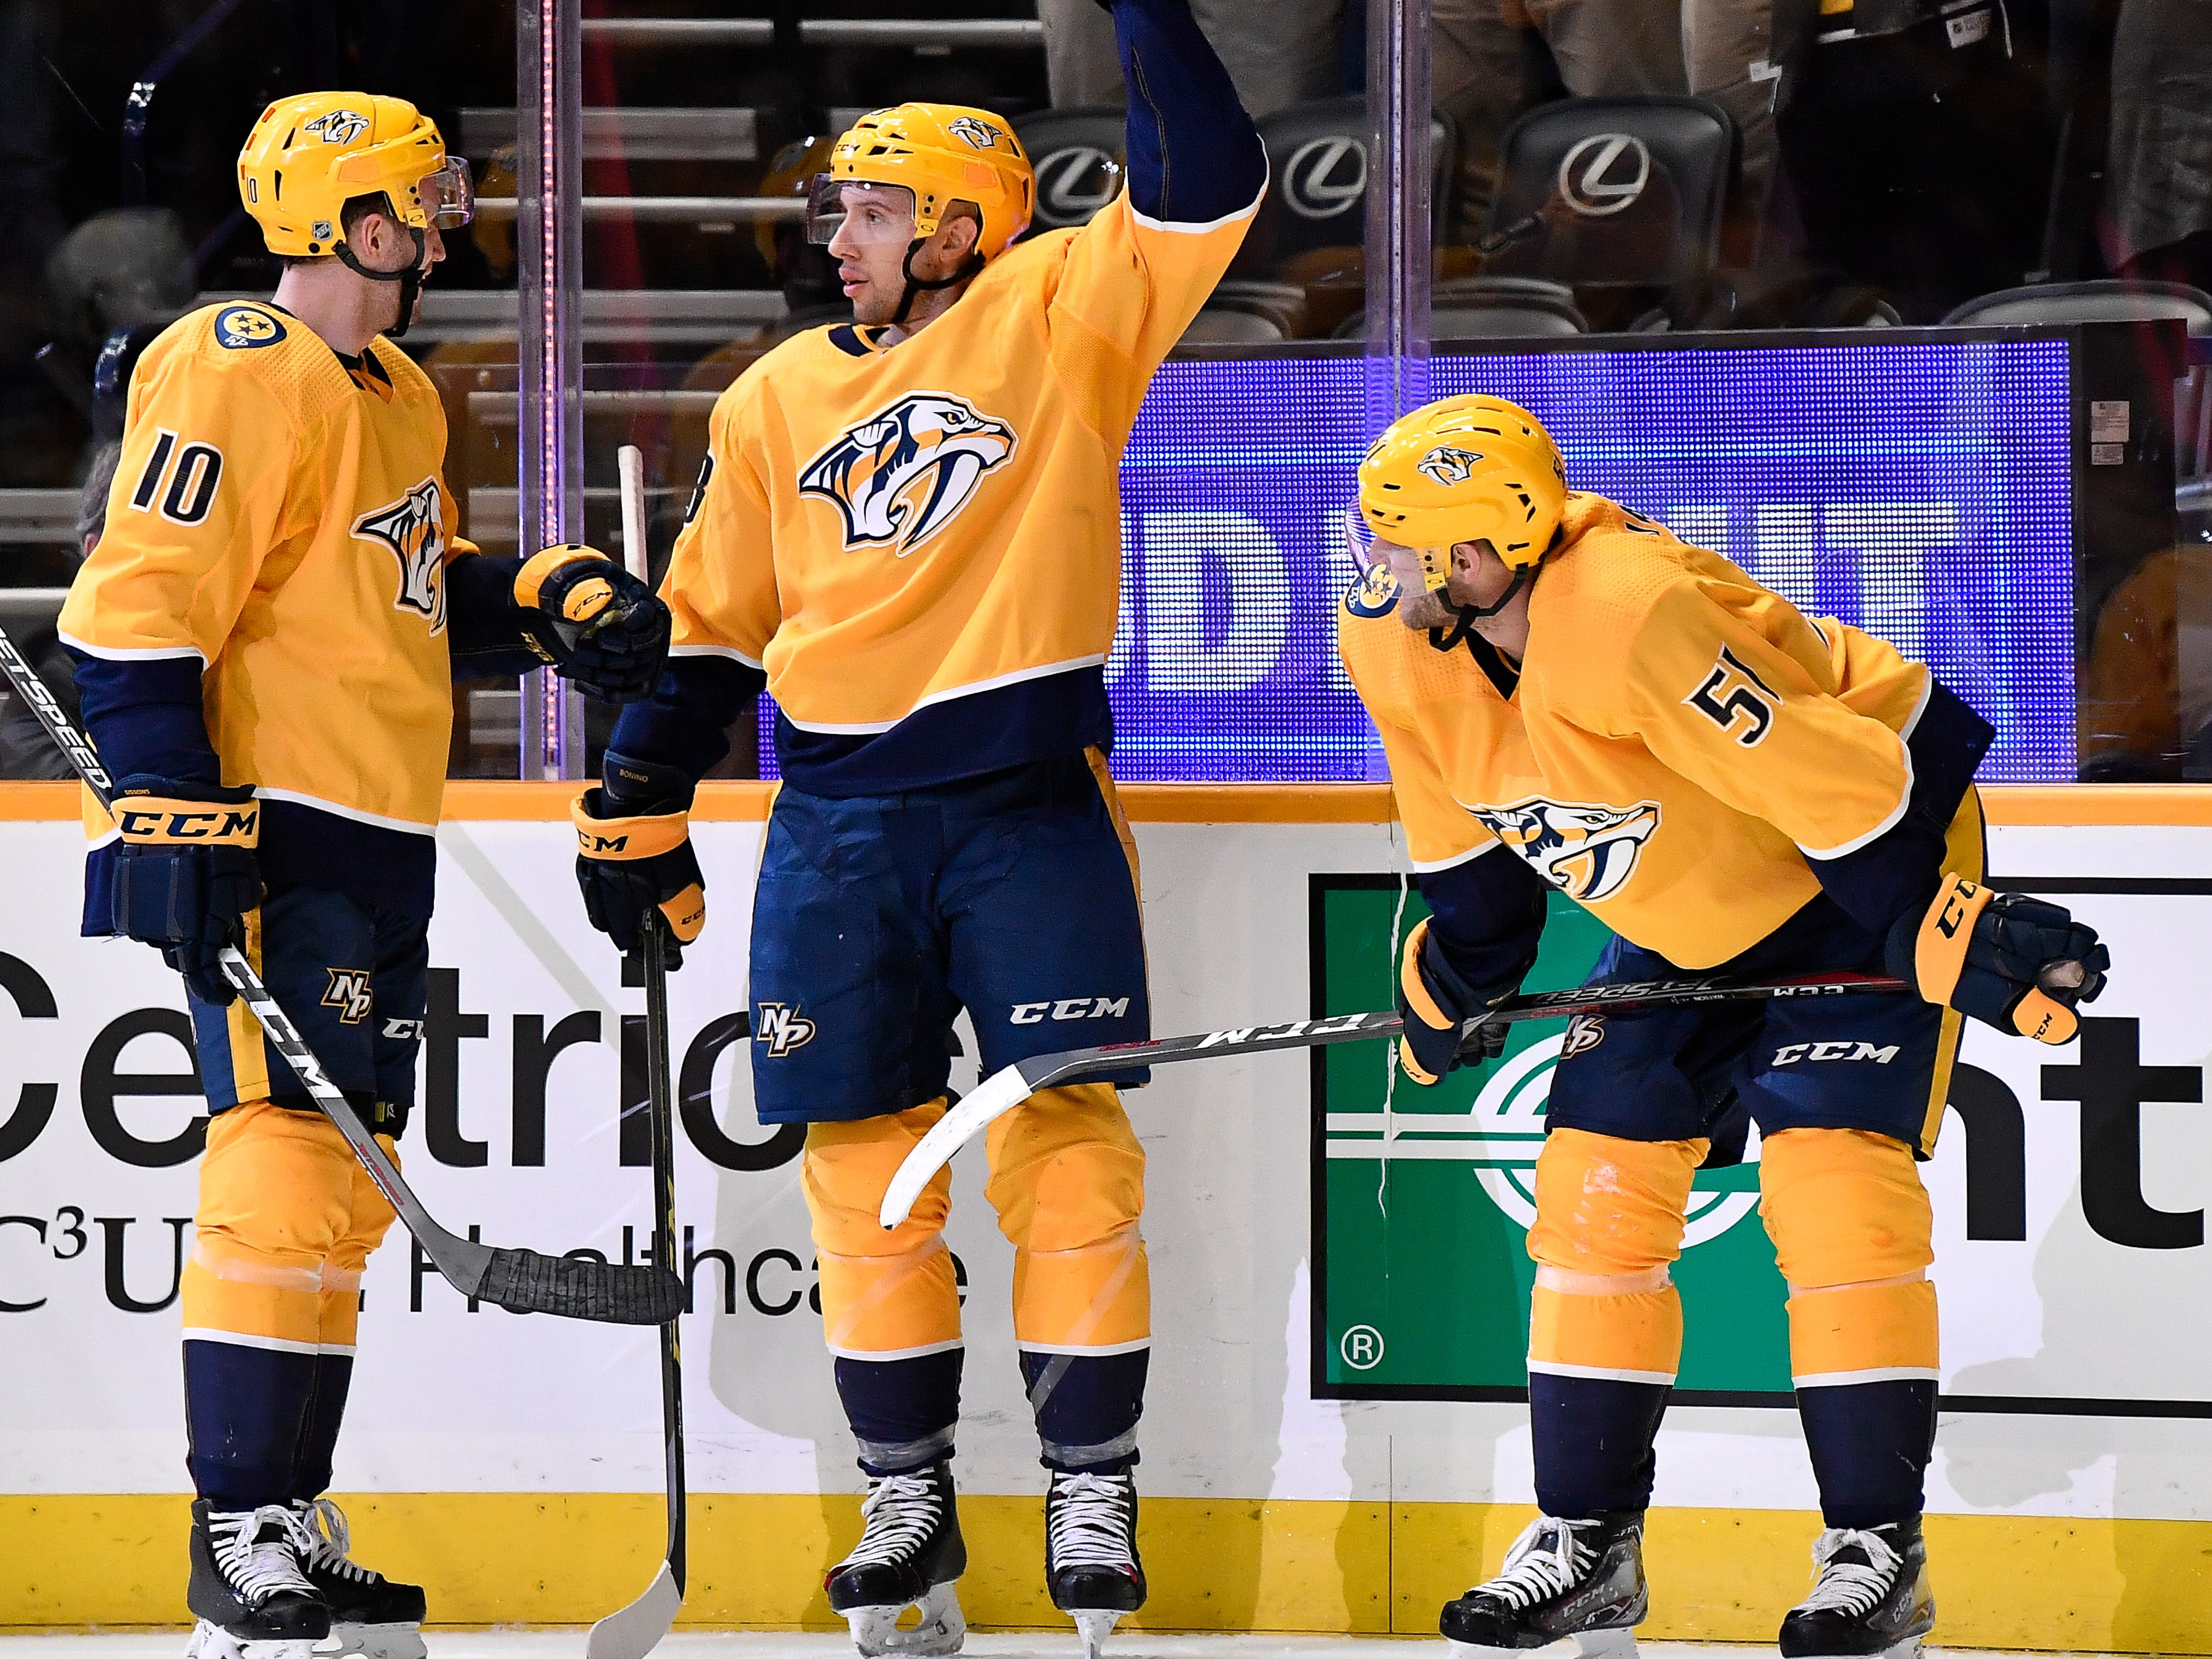 Predators center Nick Bonino (13) celebrates his goal against the Capitals with teammates center Colton Sissons (10) and left wing Austin Watson (51) during the first period at Bridgestone Arena Tuesday, Jan. 15, 2019, in Nashville, Tenn.